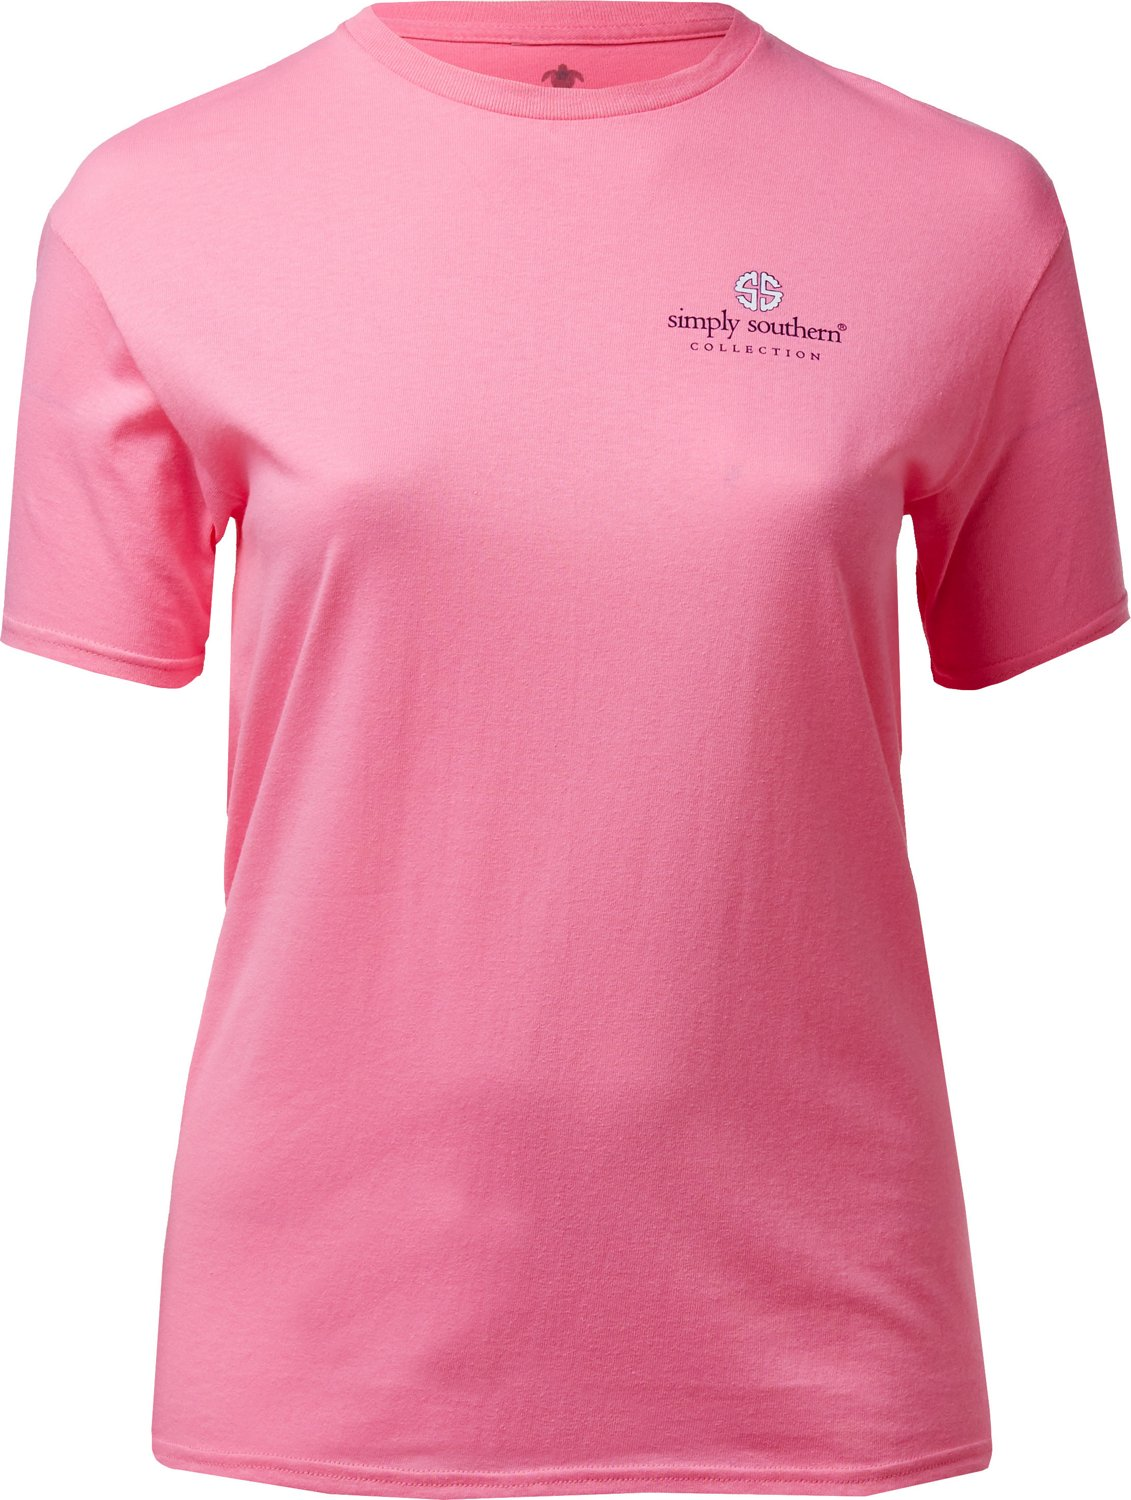 Simply Southern Women's Volleyball T-shirt - view number 1